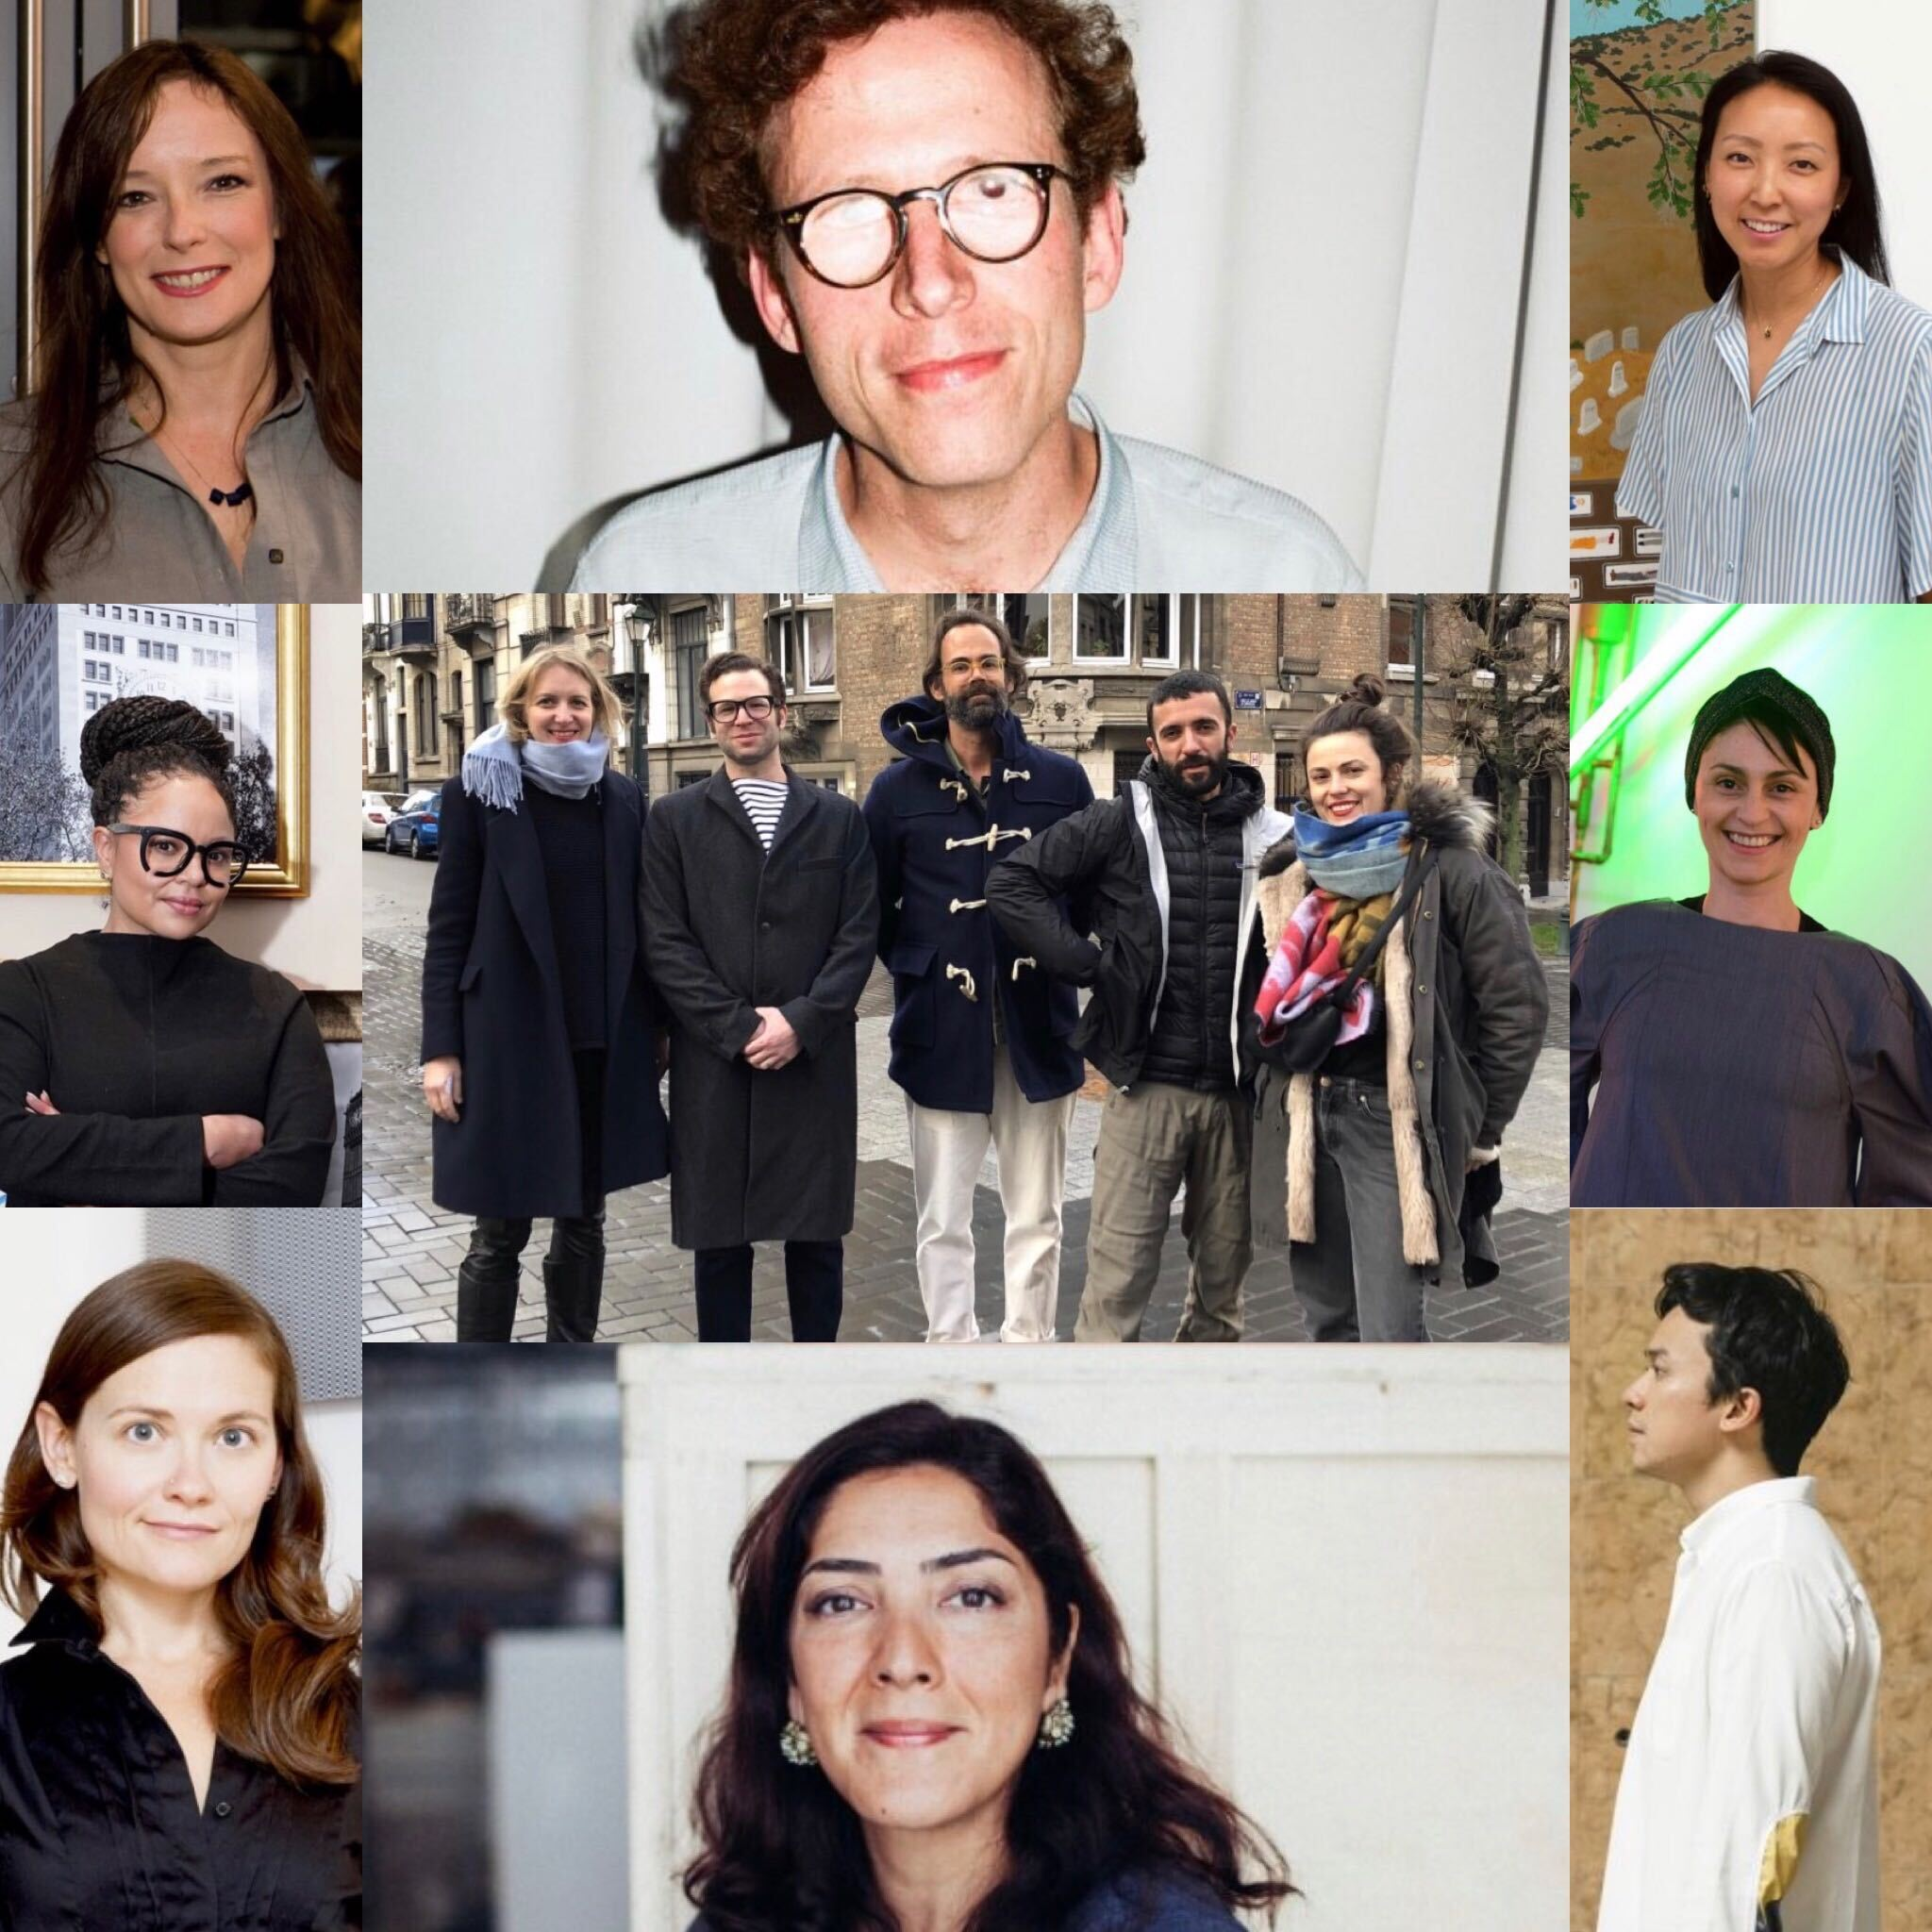 Meet the New Innovators: 9 Next-Gen Dealers Who Are Rethinking What a 21st-Century Gallery Can Be